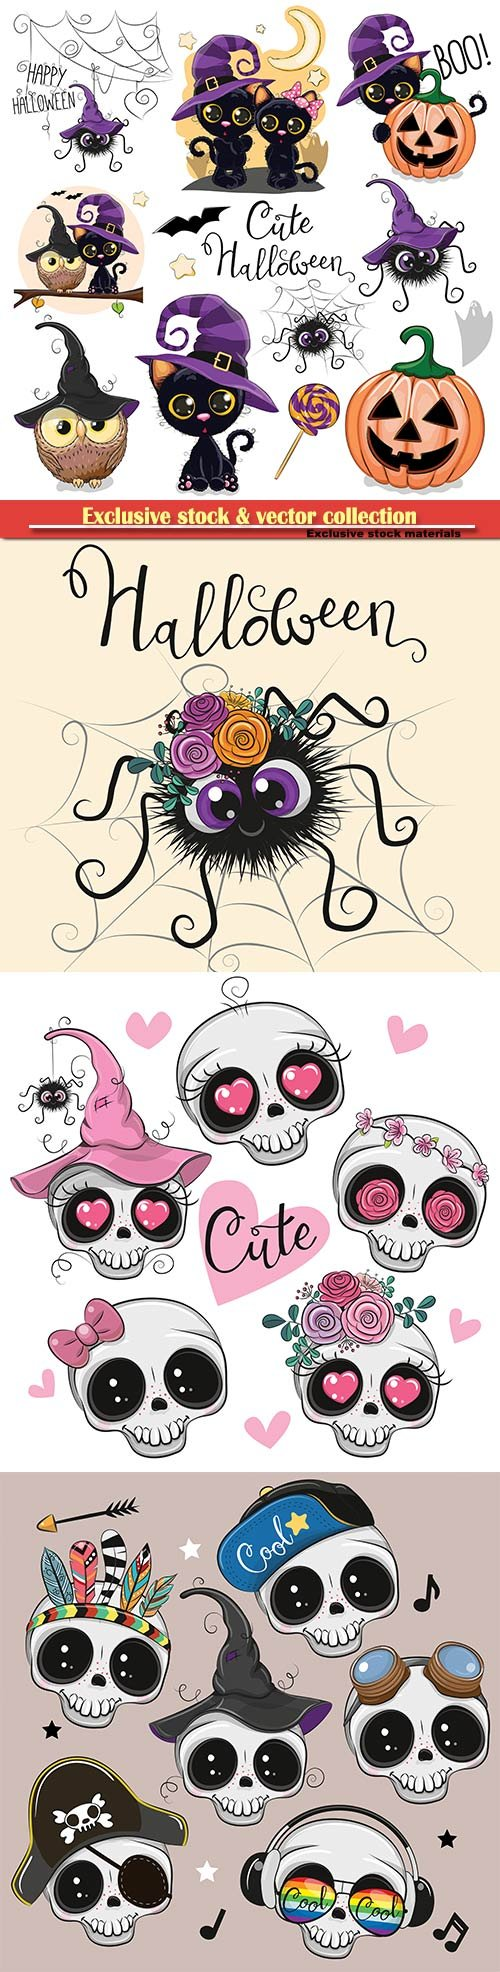 Set of Cute Halloween illustrations and design elements